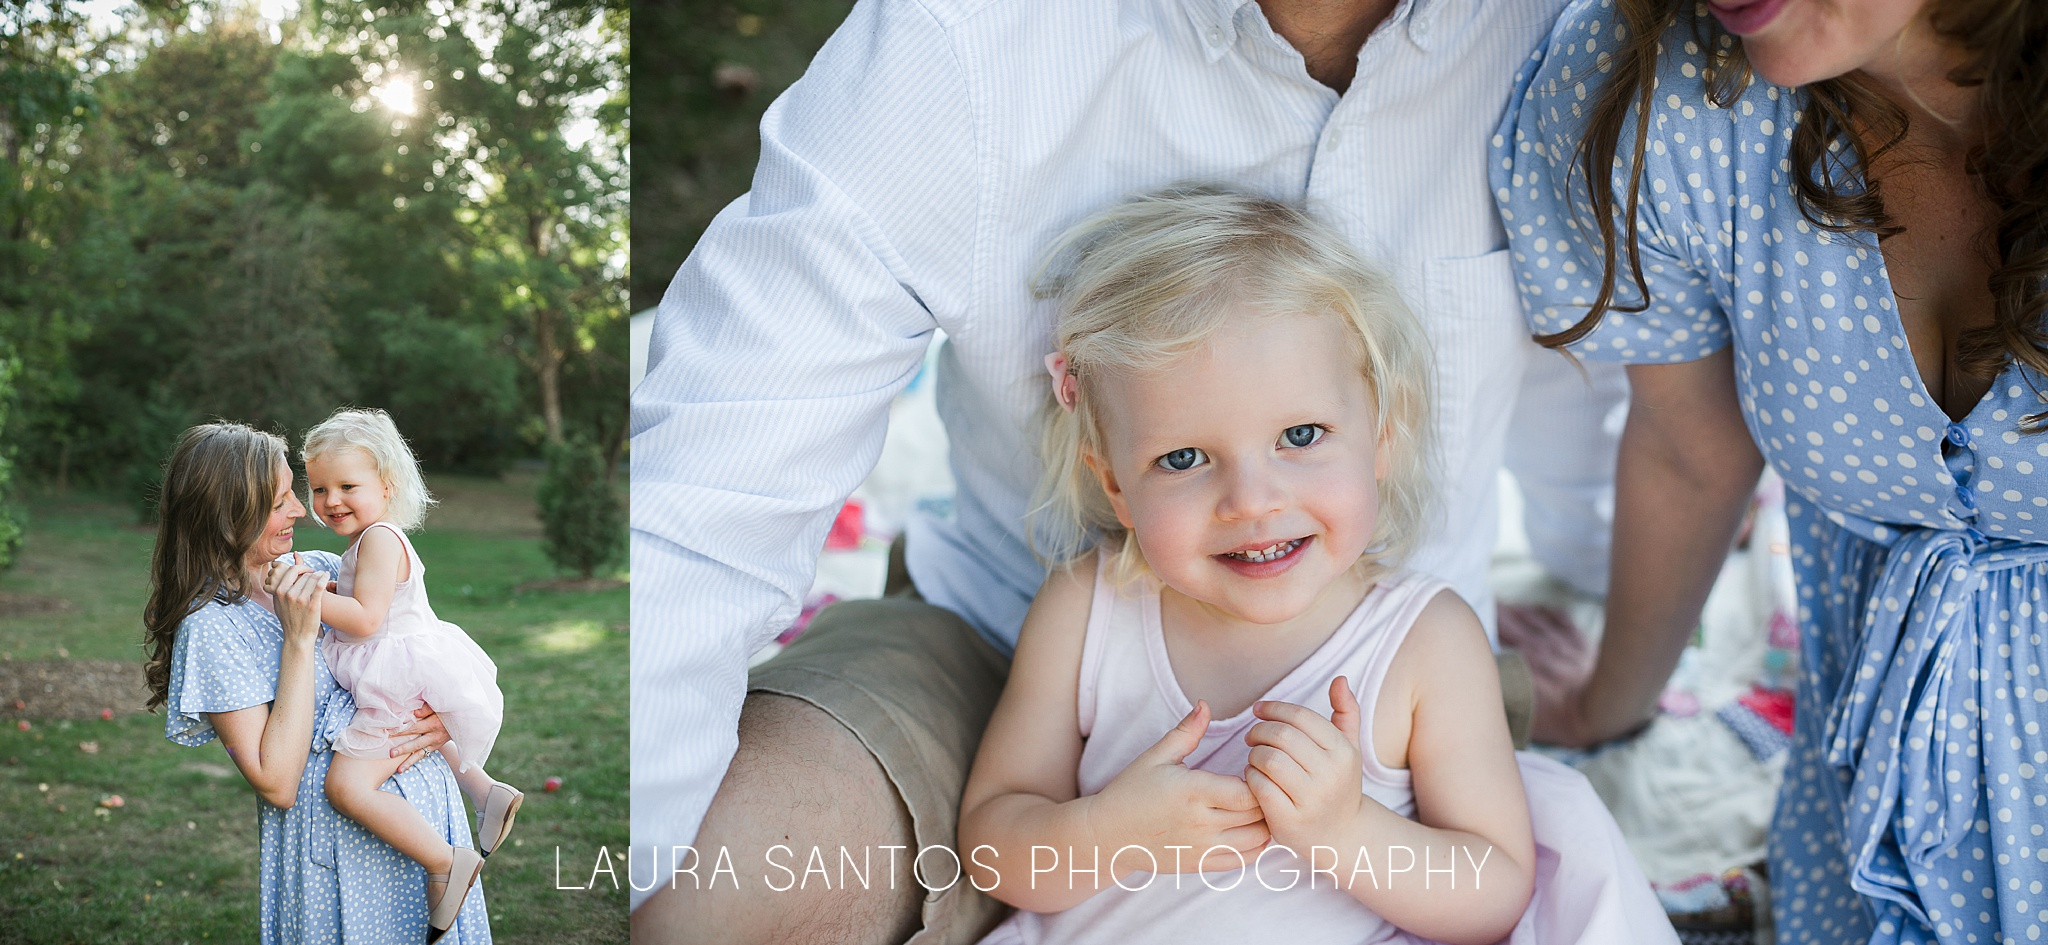 Laura Santos Photography Portland Oregon Family Photographer_0738.jpg